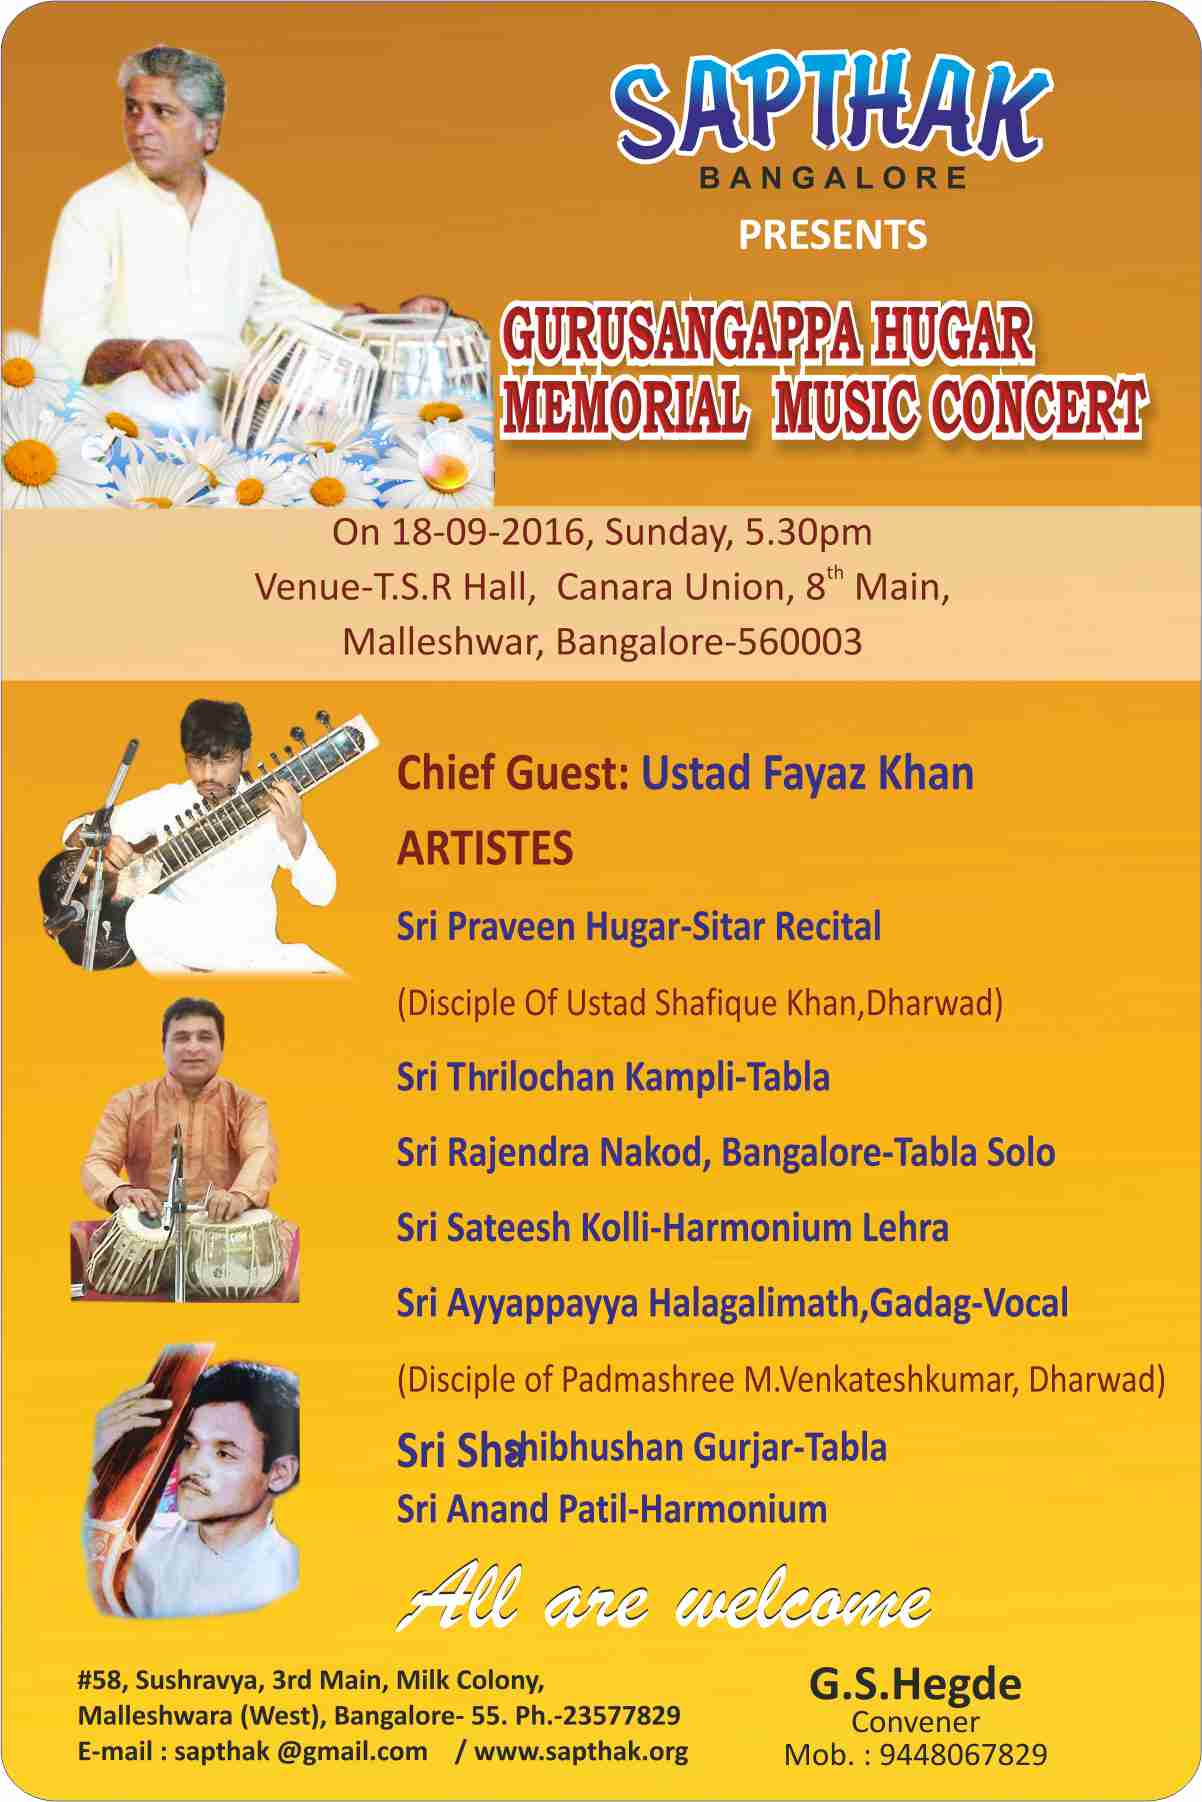 Gurusangappa Hugar English Invitation